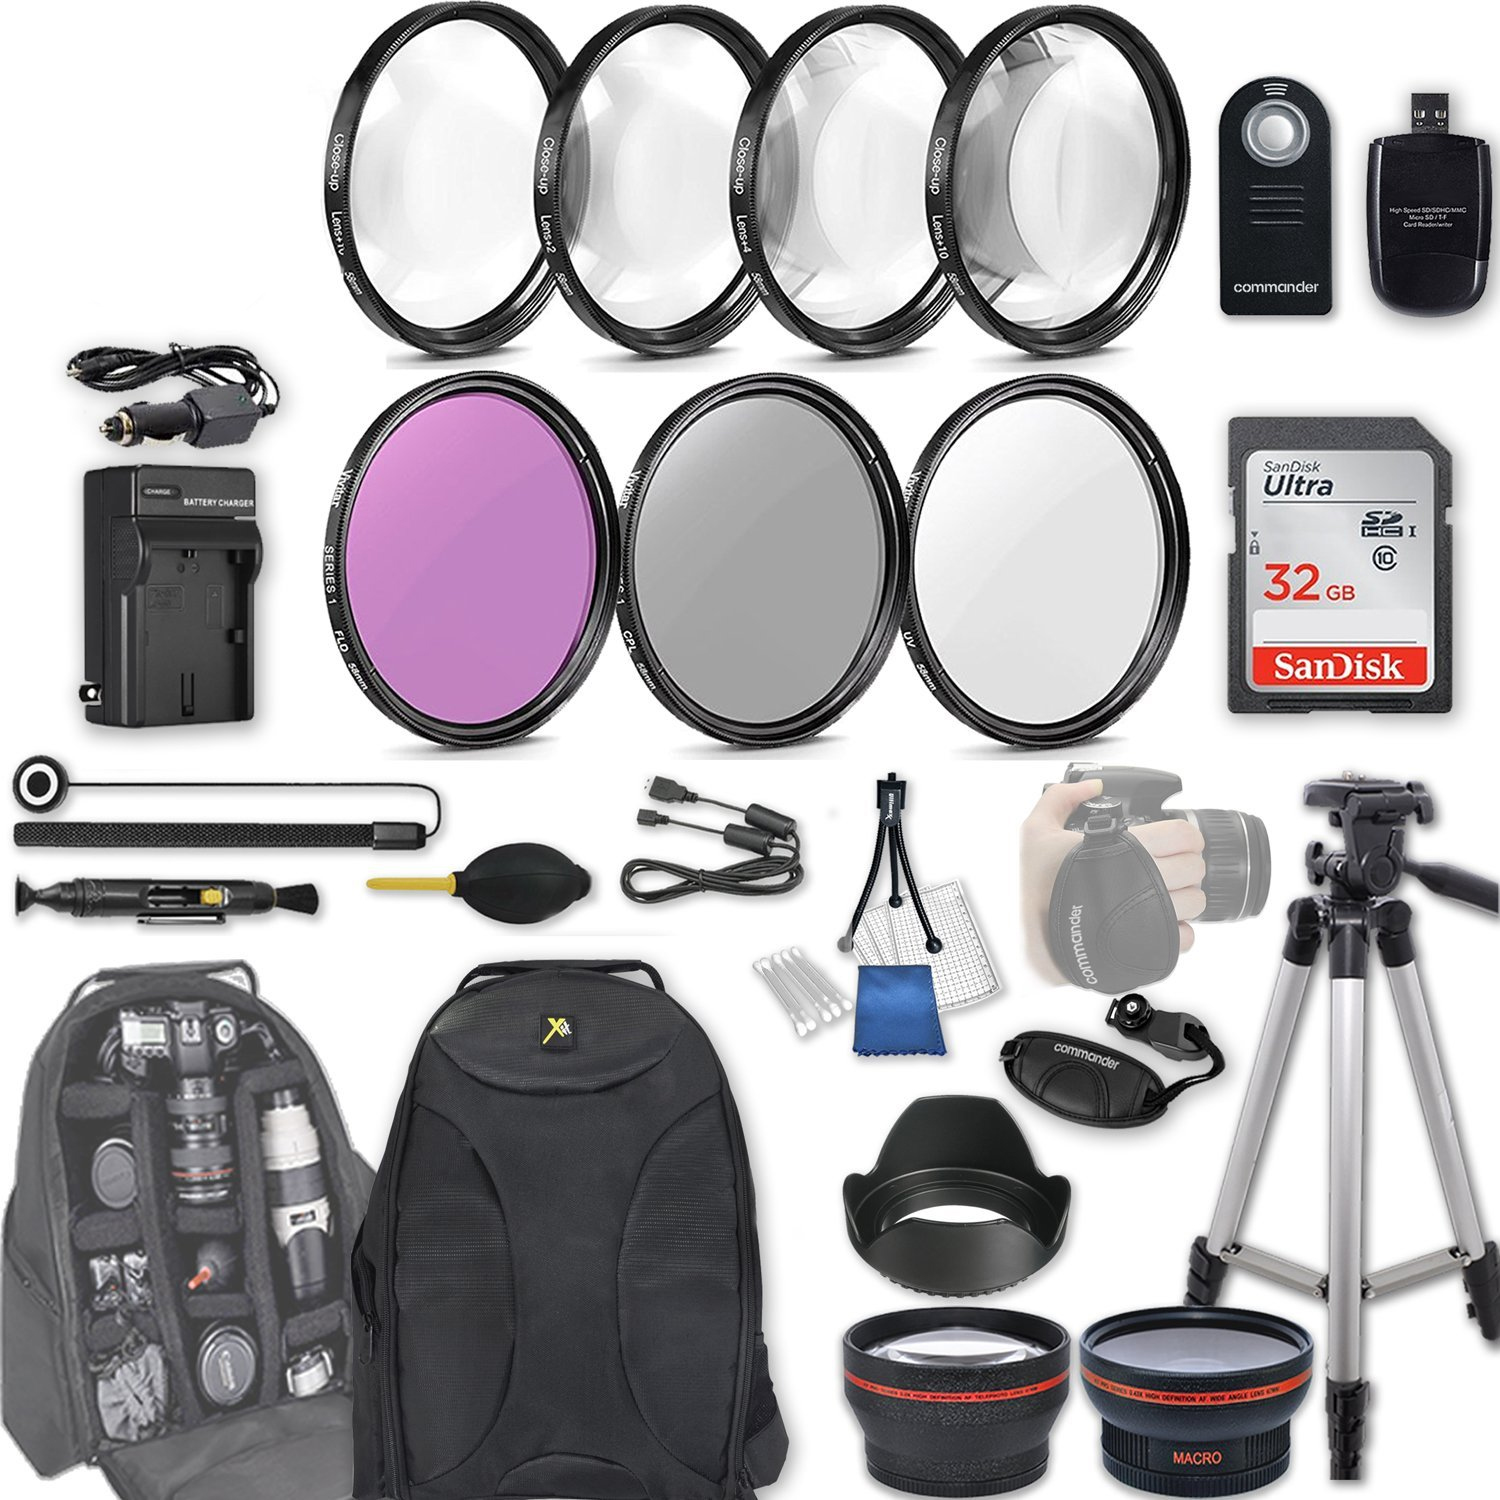 58mm 28 Pc Accessory Kit for Canon EOS Rebel SL2, 200D DSLR with 0.43x Wide Angle Lens, 2.2x Telephoto Lens, 32GB SD, Filter & Macro Kits, Backpack Case, and More